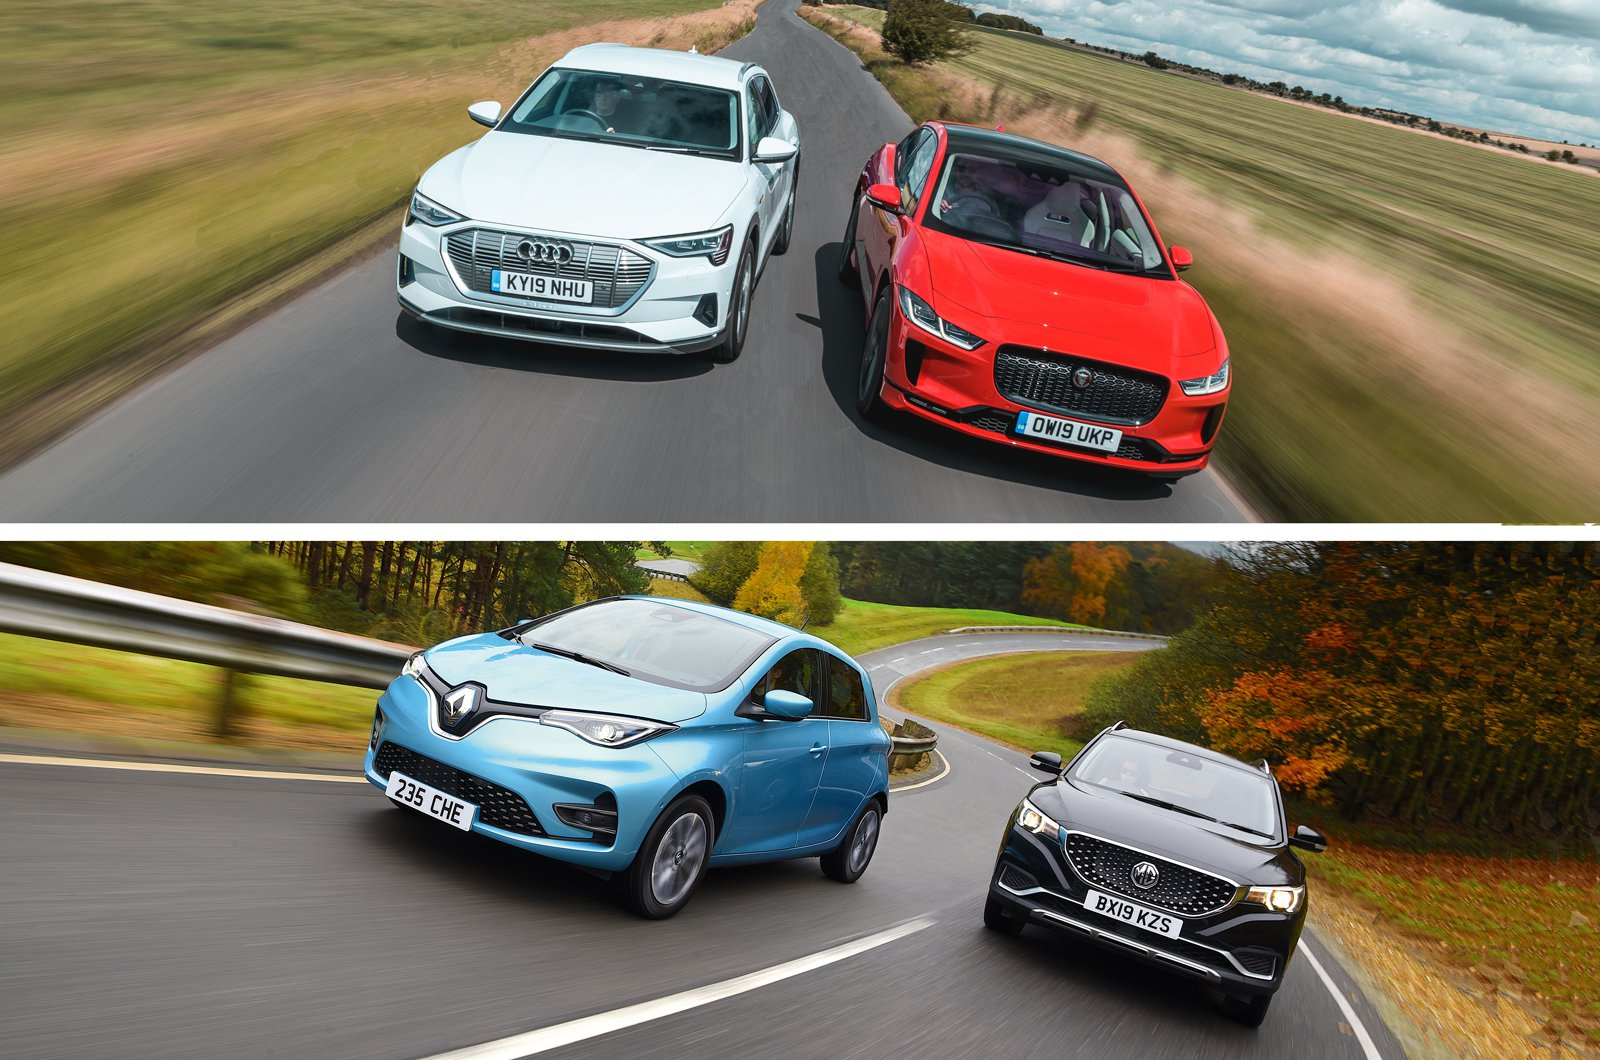 Audi E-tron with Jaguar I-Pace and Renault Zoe with MG ZS EV